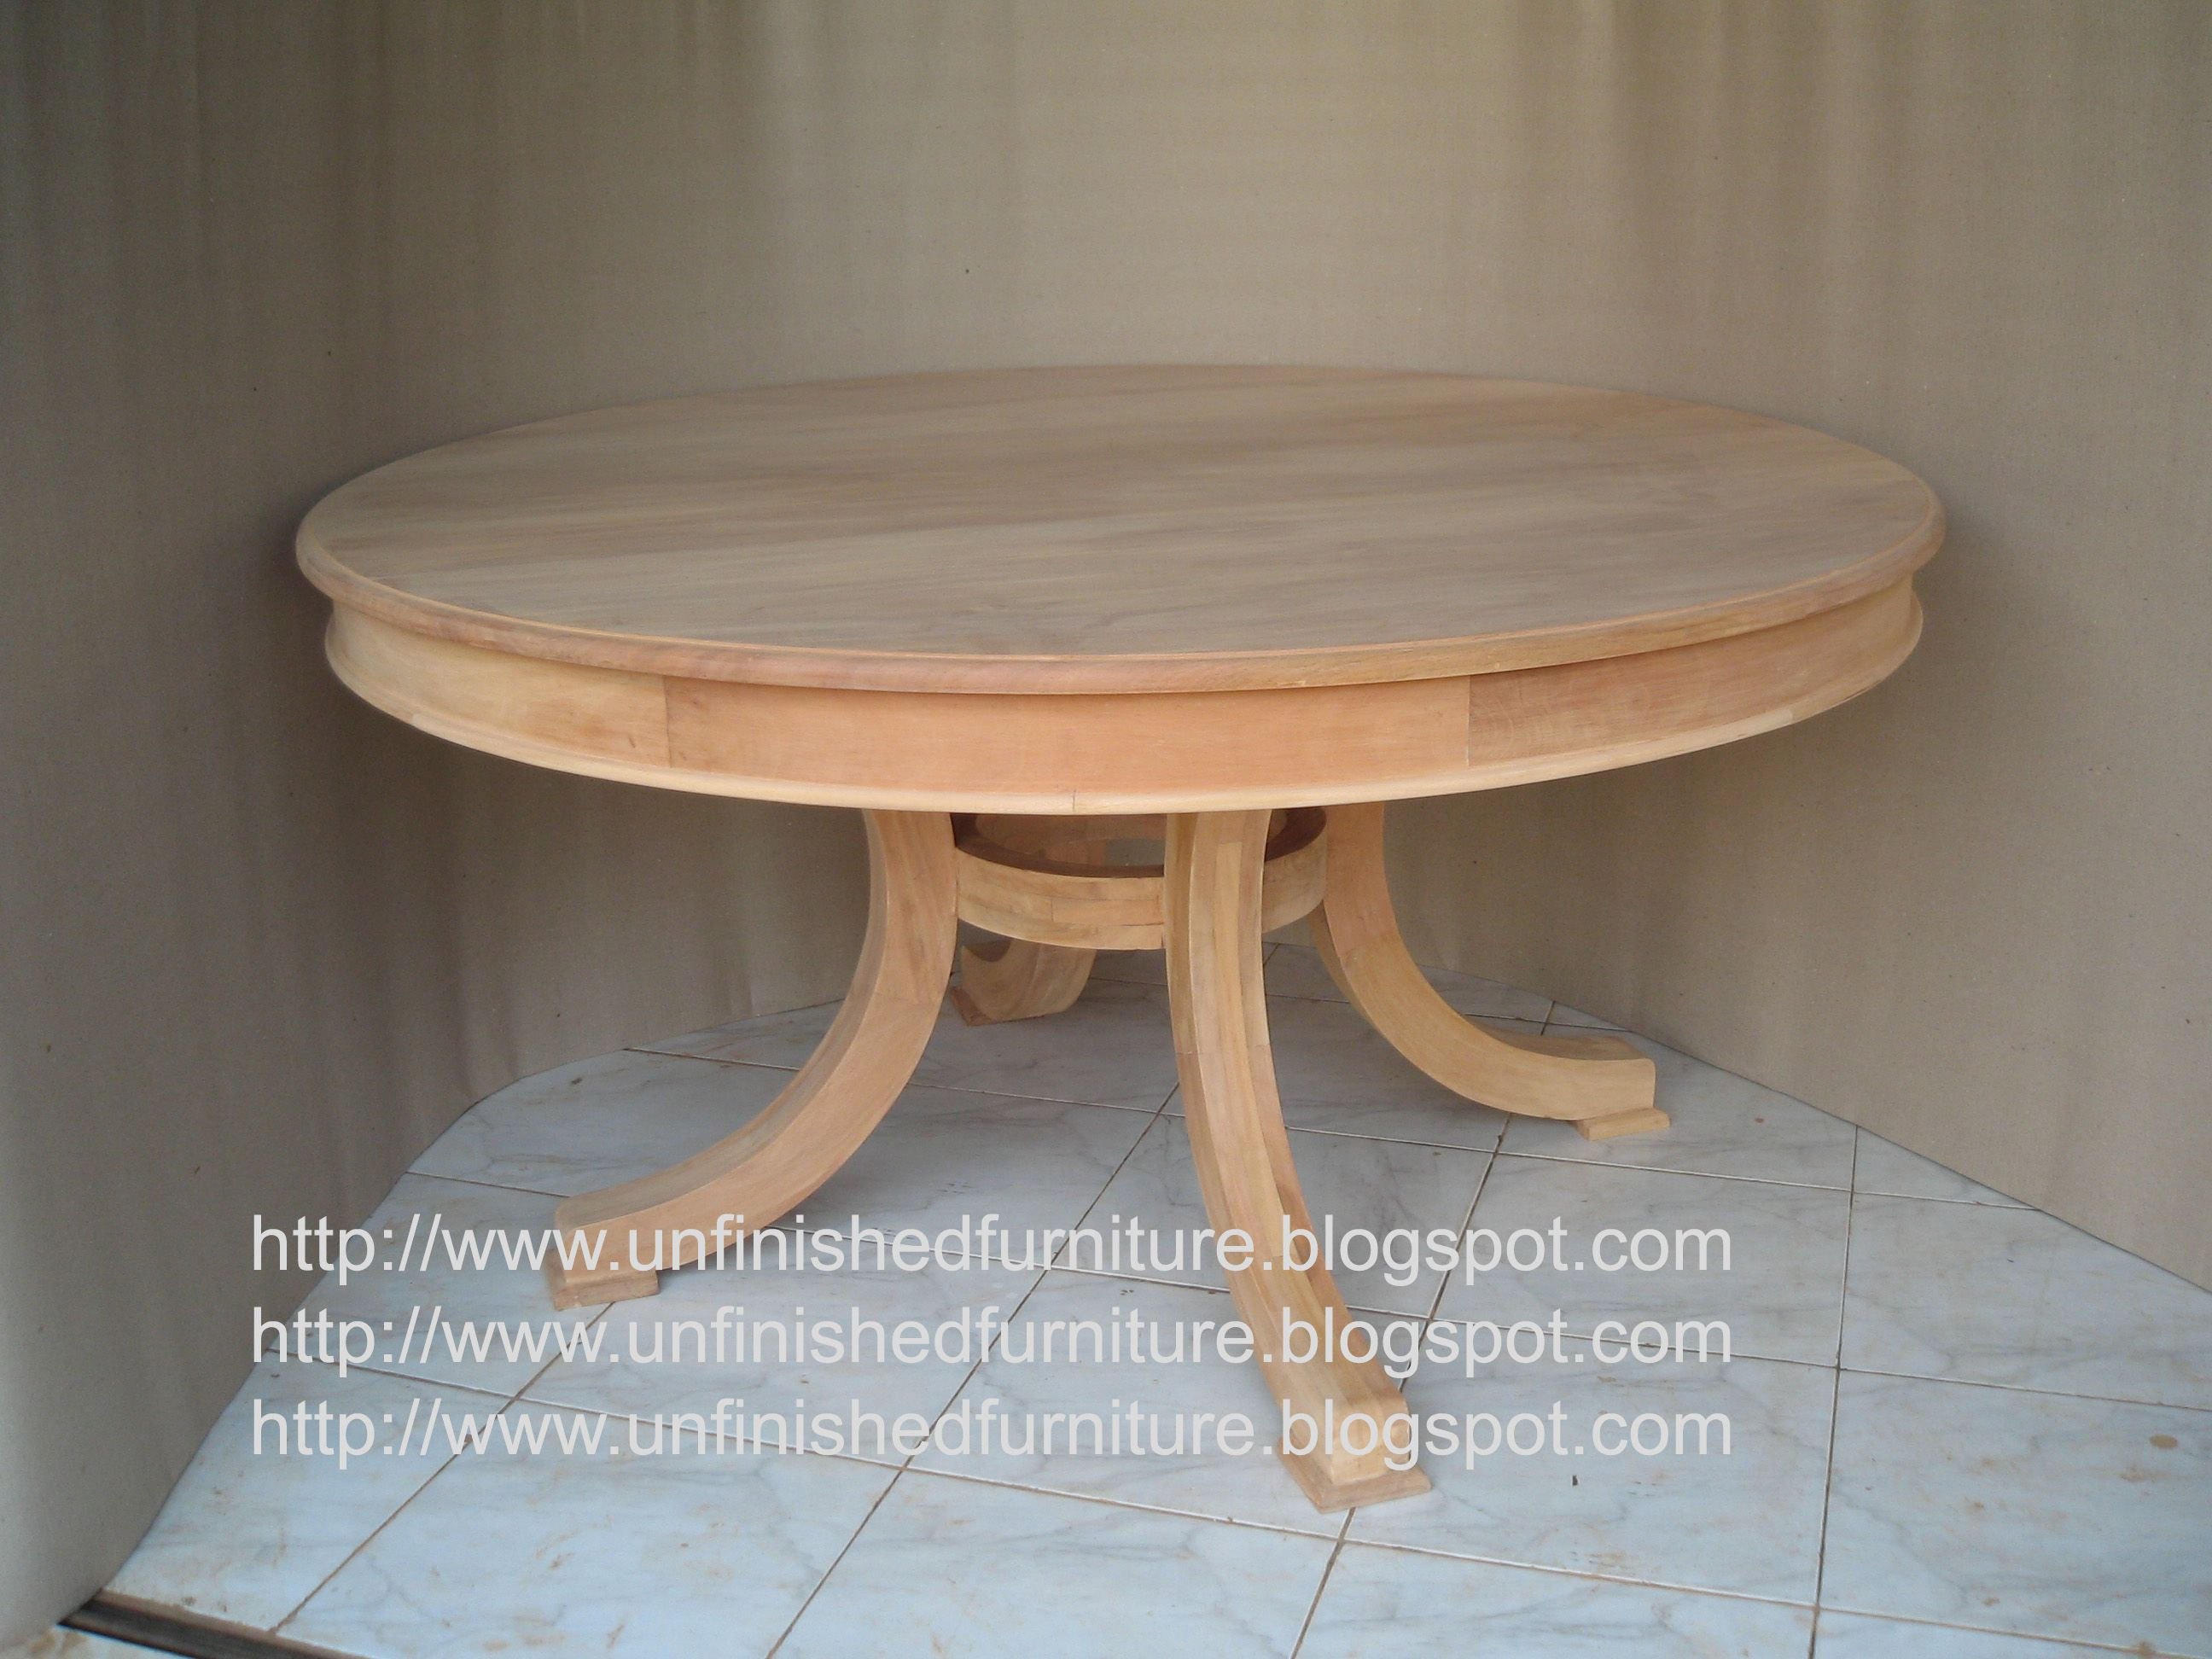 Unfinished Mahogany Furniture 4 Leg Curve Solid Round Dining Table Made Of Fine Solid Kiln Dry Italian Style Furniture French Style Furniture Raw Furniture Unfinished round dining tables